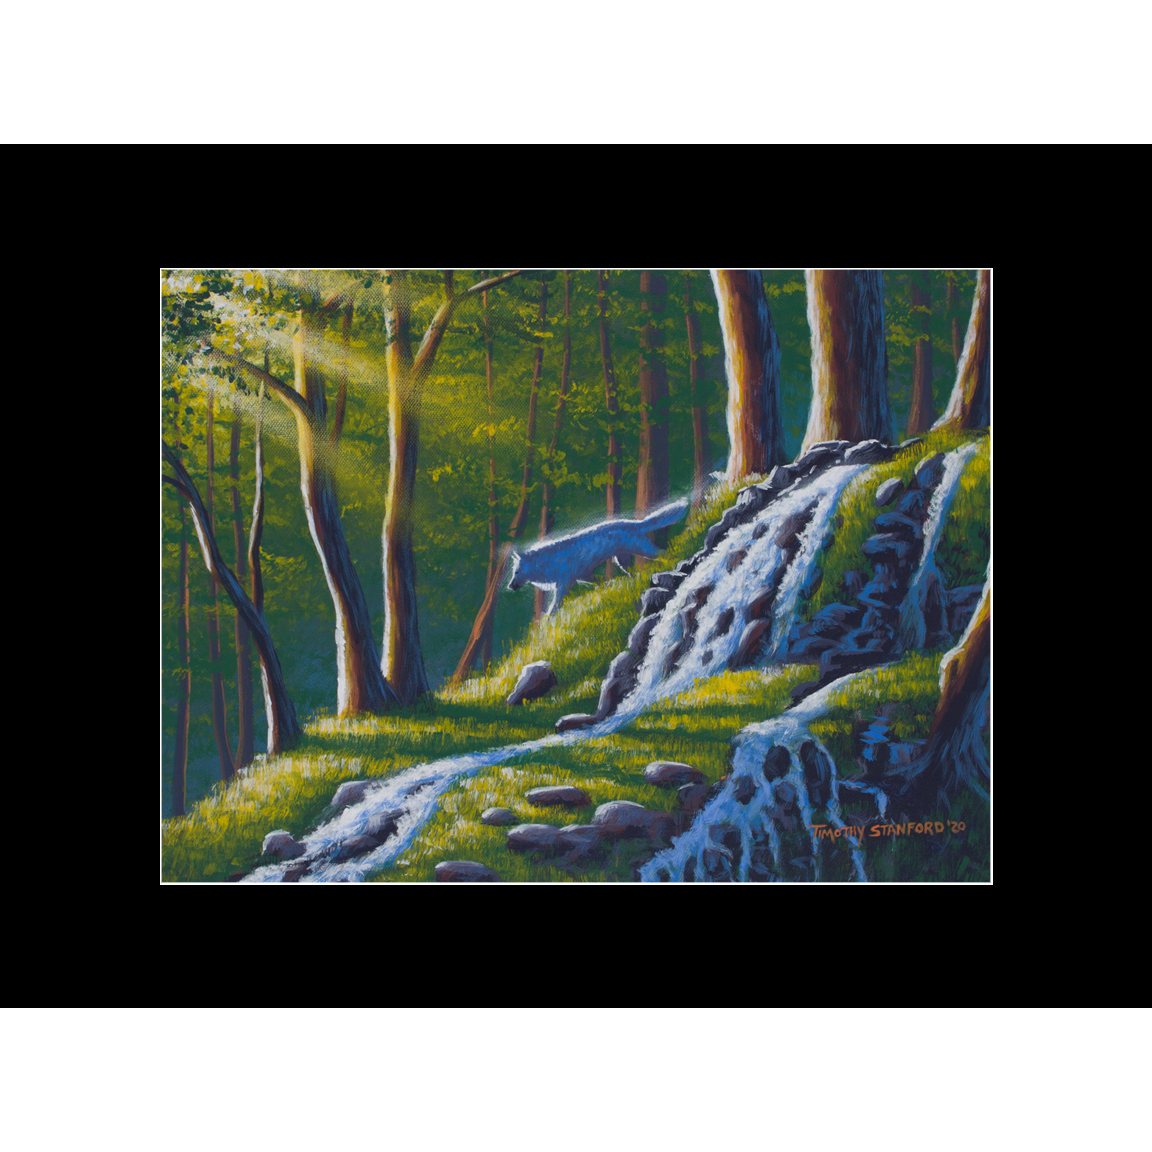 """Fine art matted print of Timothy Stanford's original acrylic painting """"Morning Rises"""""""